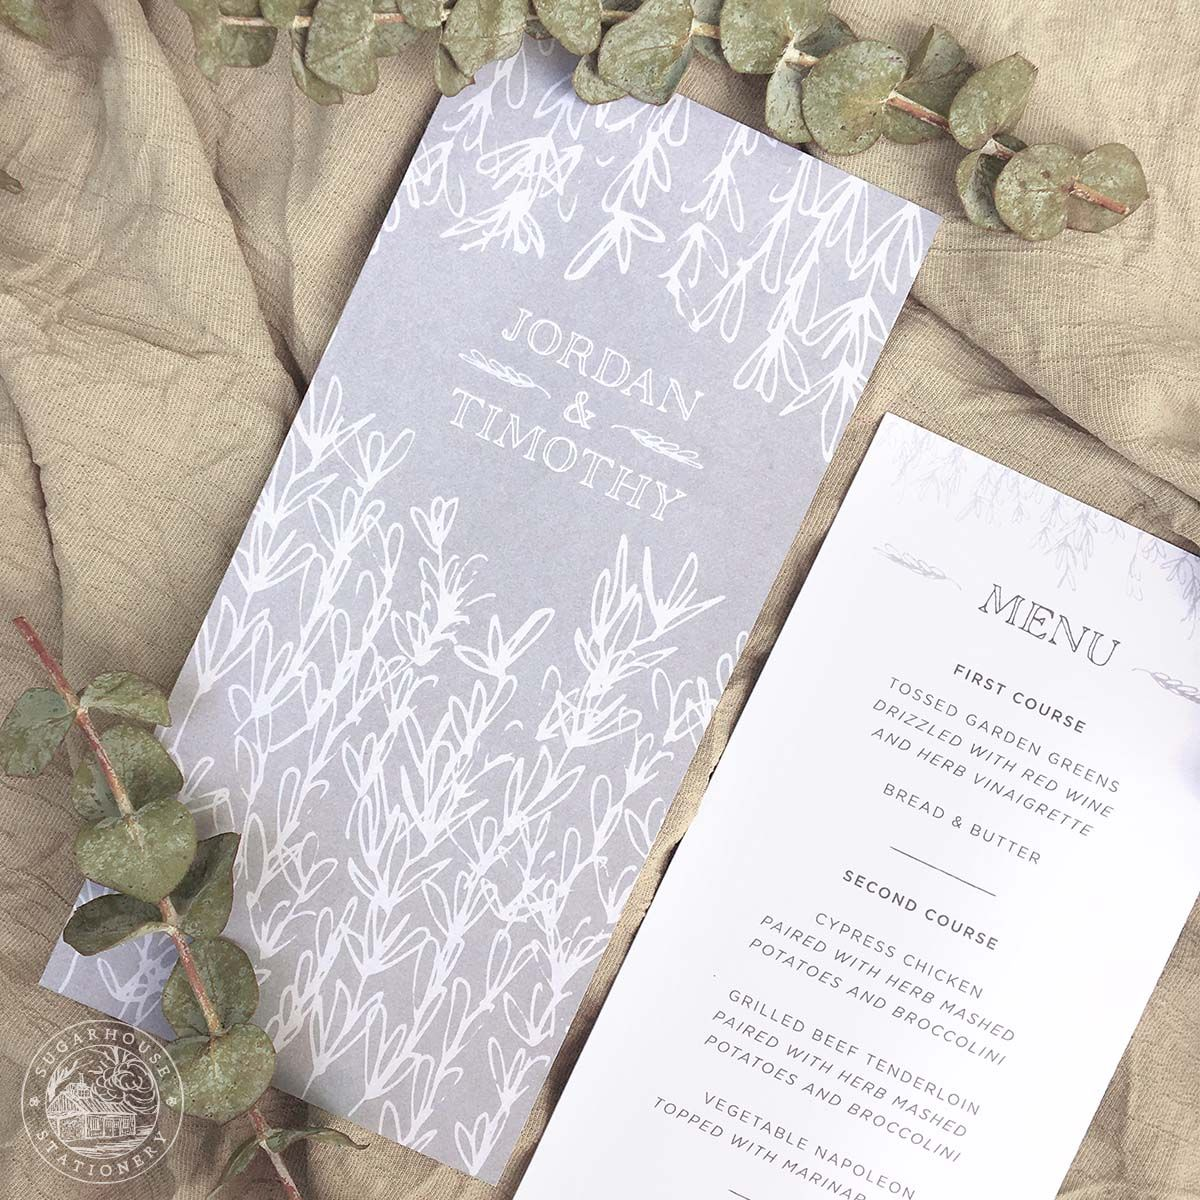 Mansfield grade a invitation suite stationery designs inspired wedding invitation design company specializing in invitation suites save the dates day of pieces and custom stationery design services stopboris Images